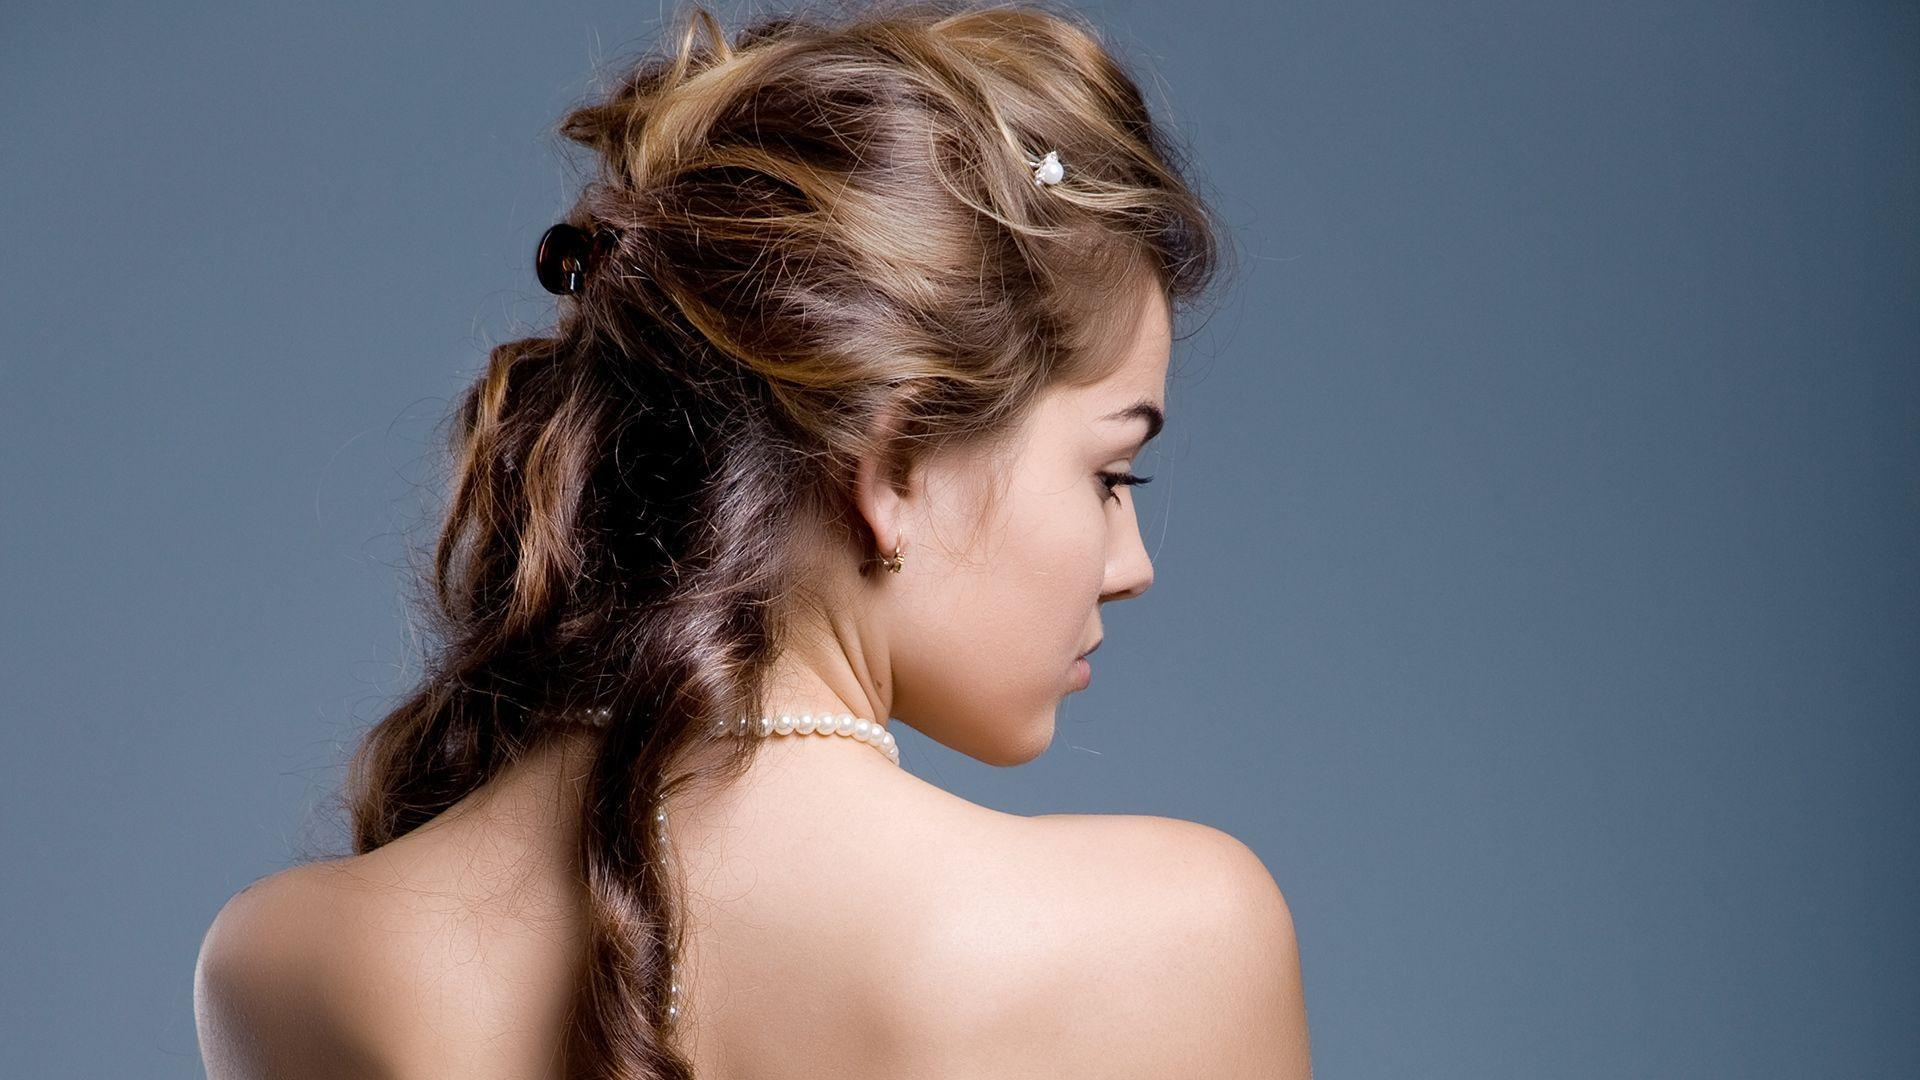 Hairstyles Wallpapers - Wallpaper Cave